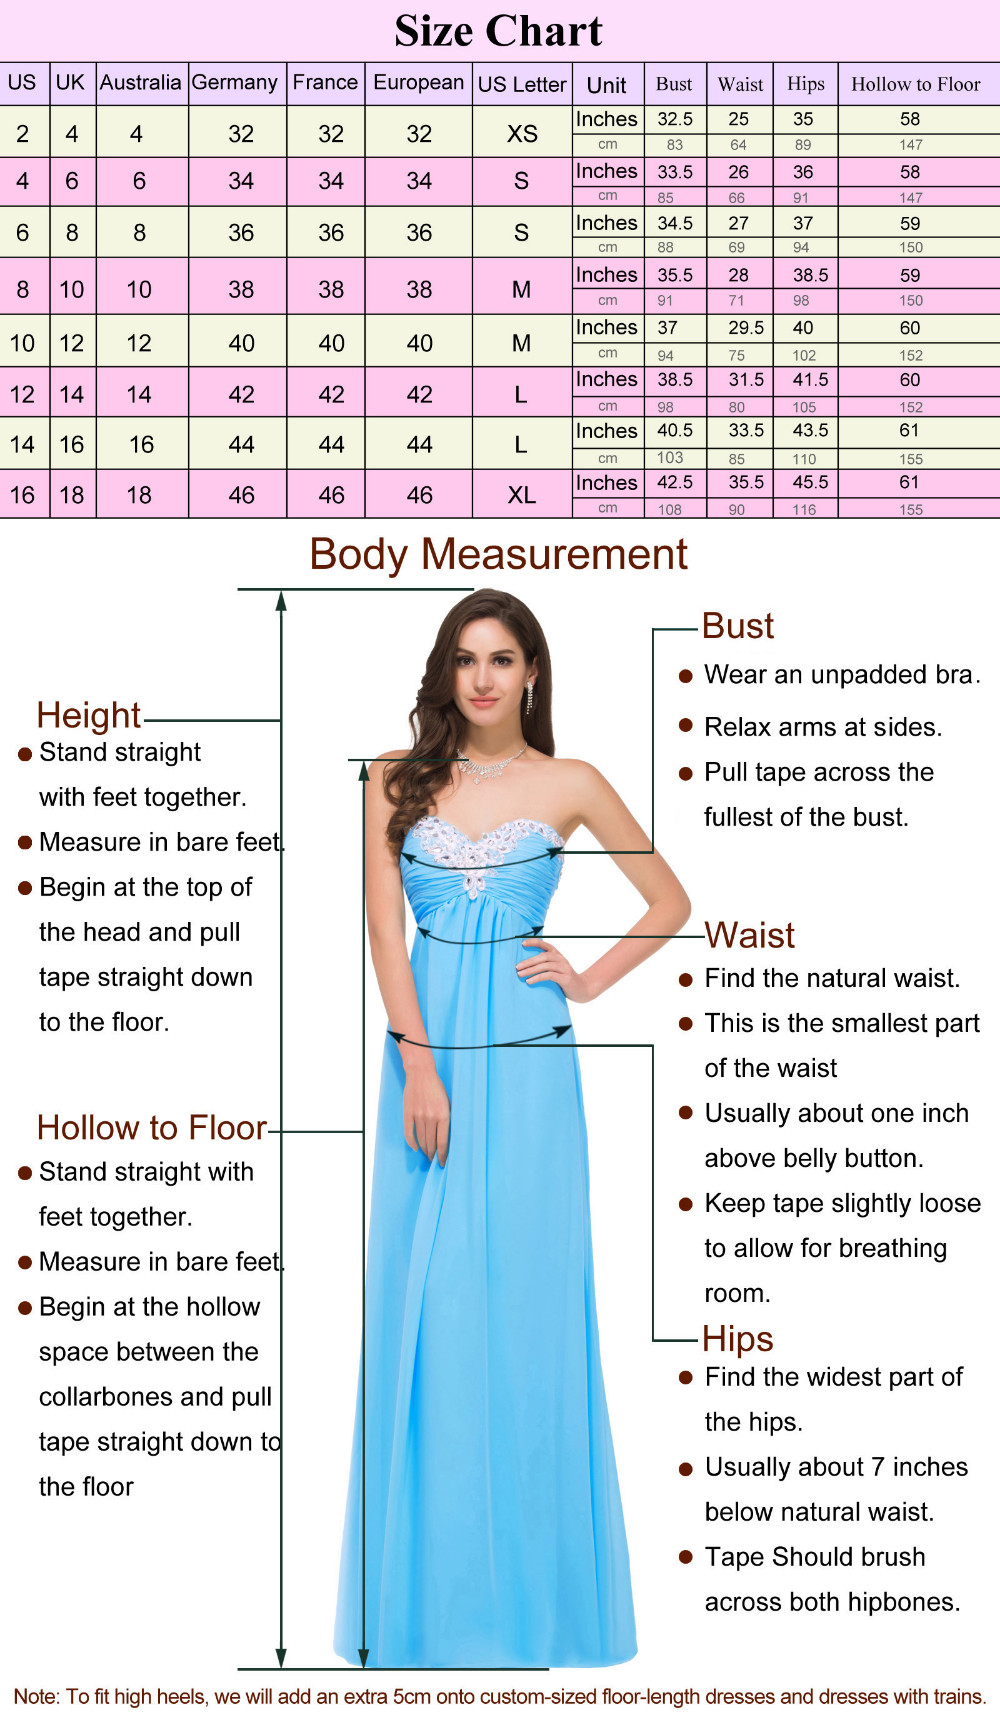 Lavender Green Blue Bridesmaid Dresses Long Wedding Party Dress Bruidsmeisjes Jurk Chiffon Gelinlik Prom Dresses for Bridesmaids 3